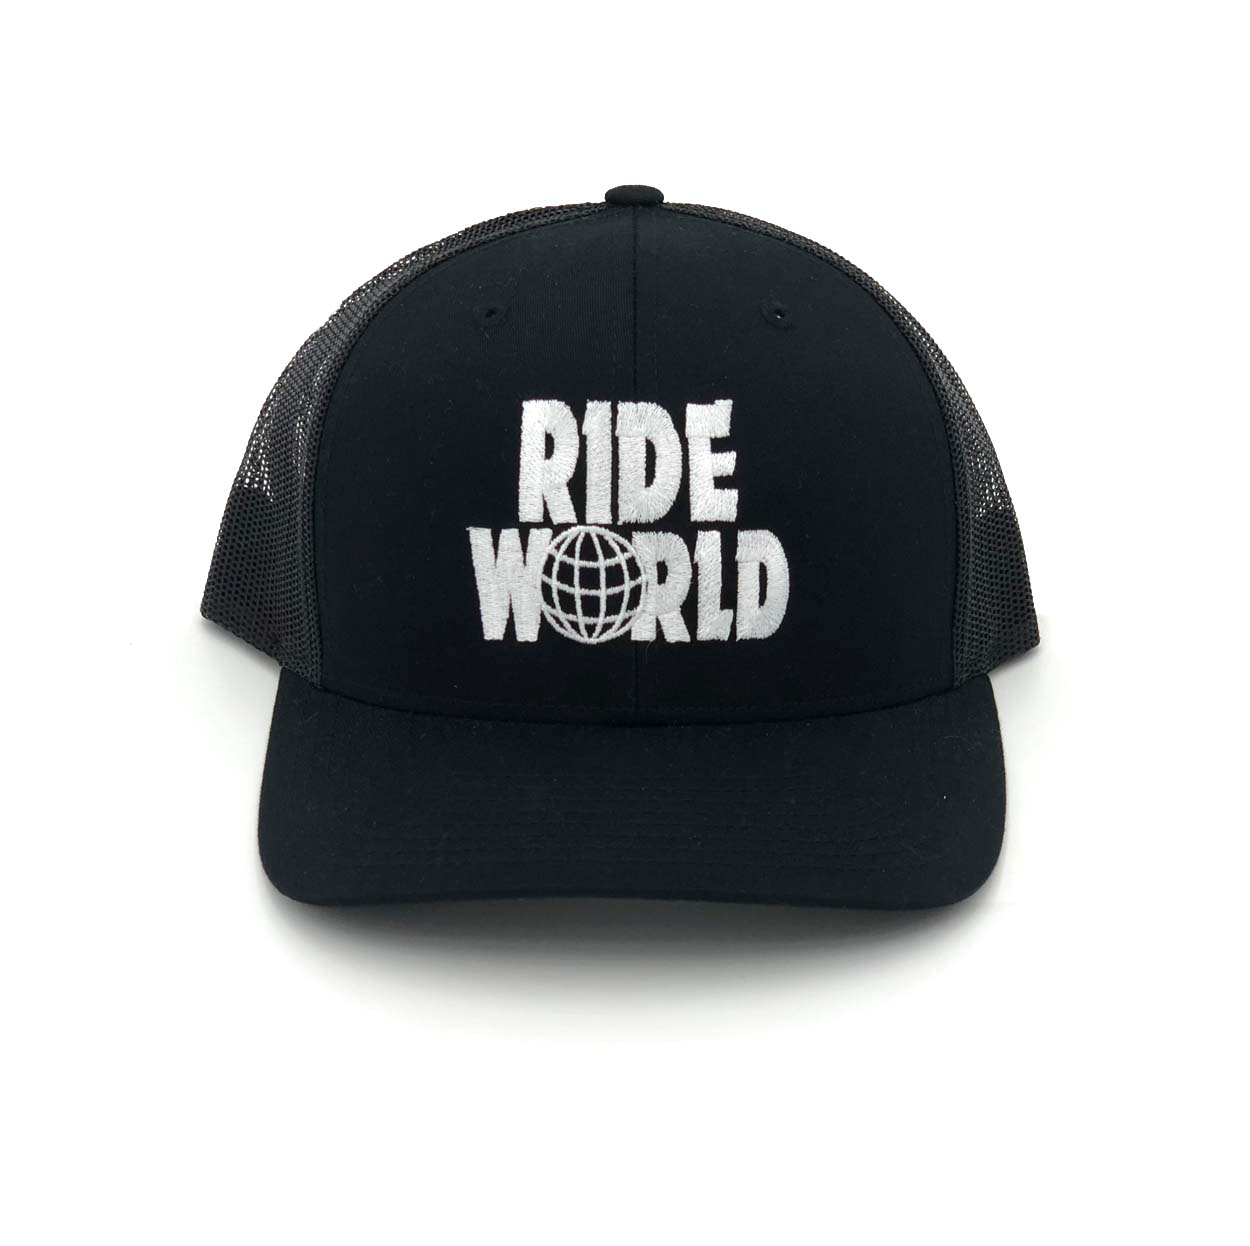 Ride World Logo Classic Embroidered Snapback Trucker Hat Black/White